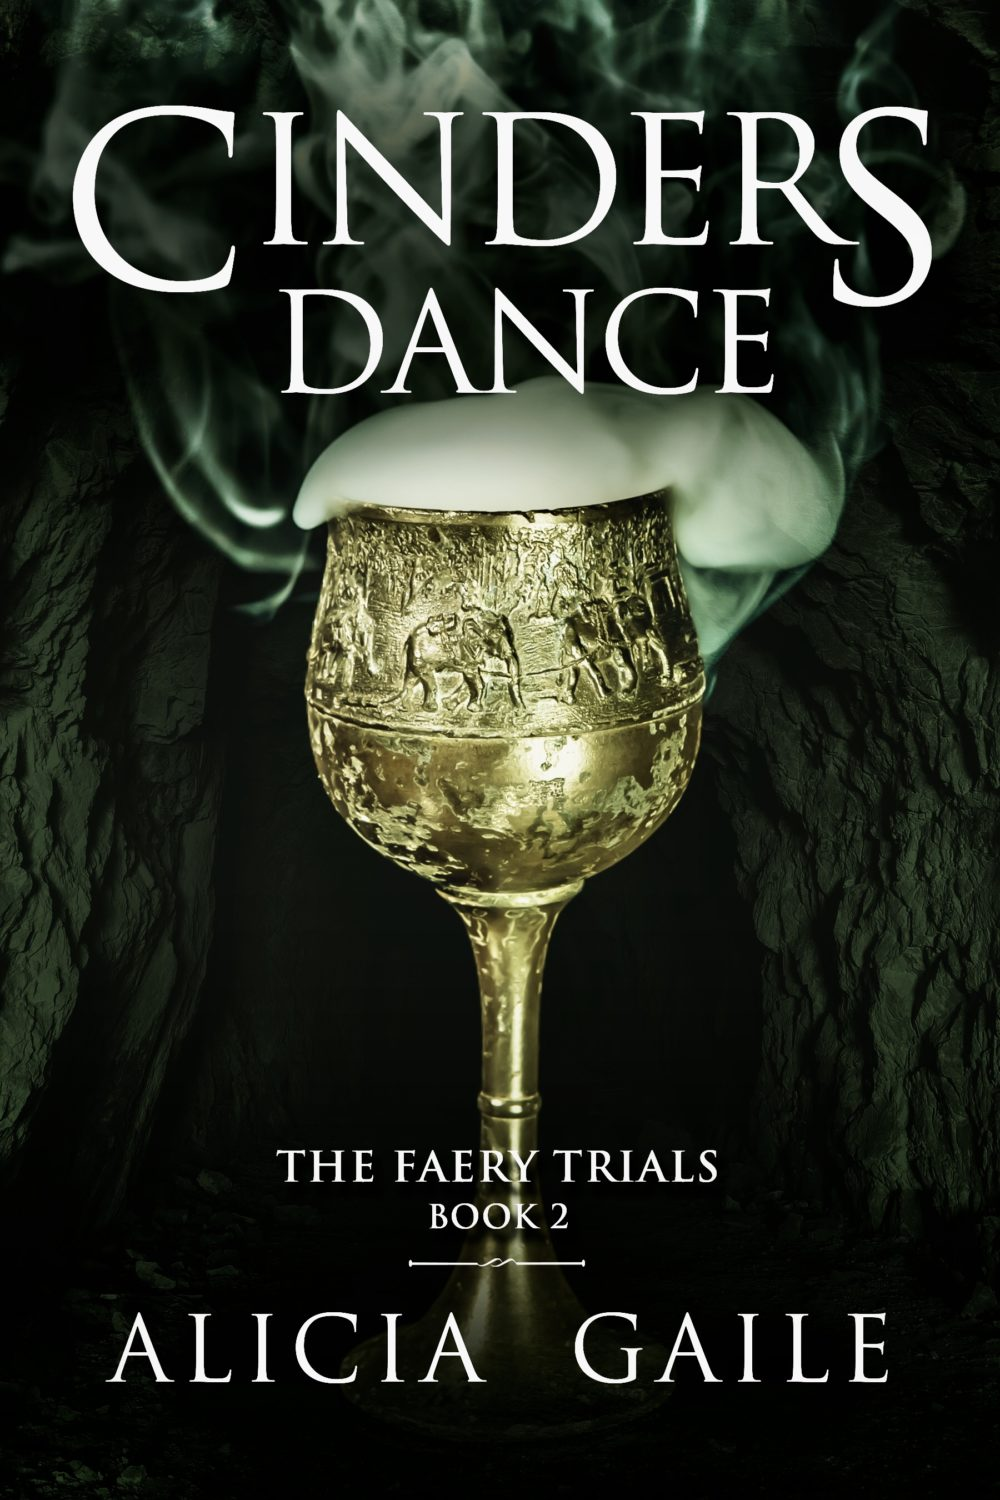 Cinders Dance by Alicia Gaile